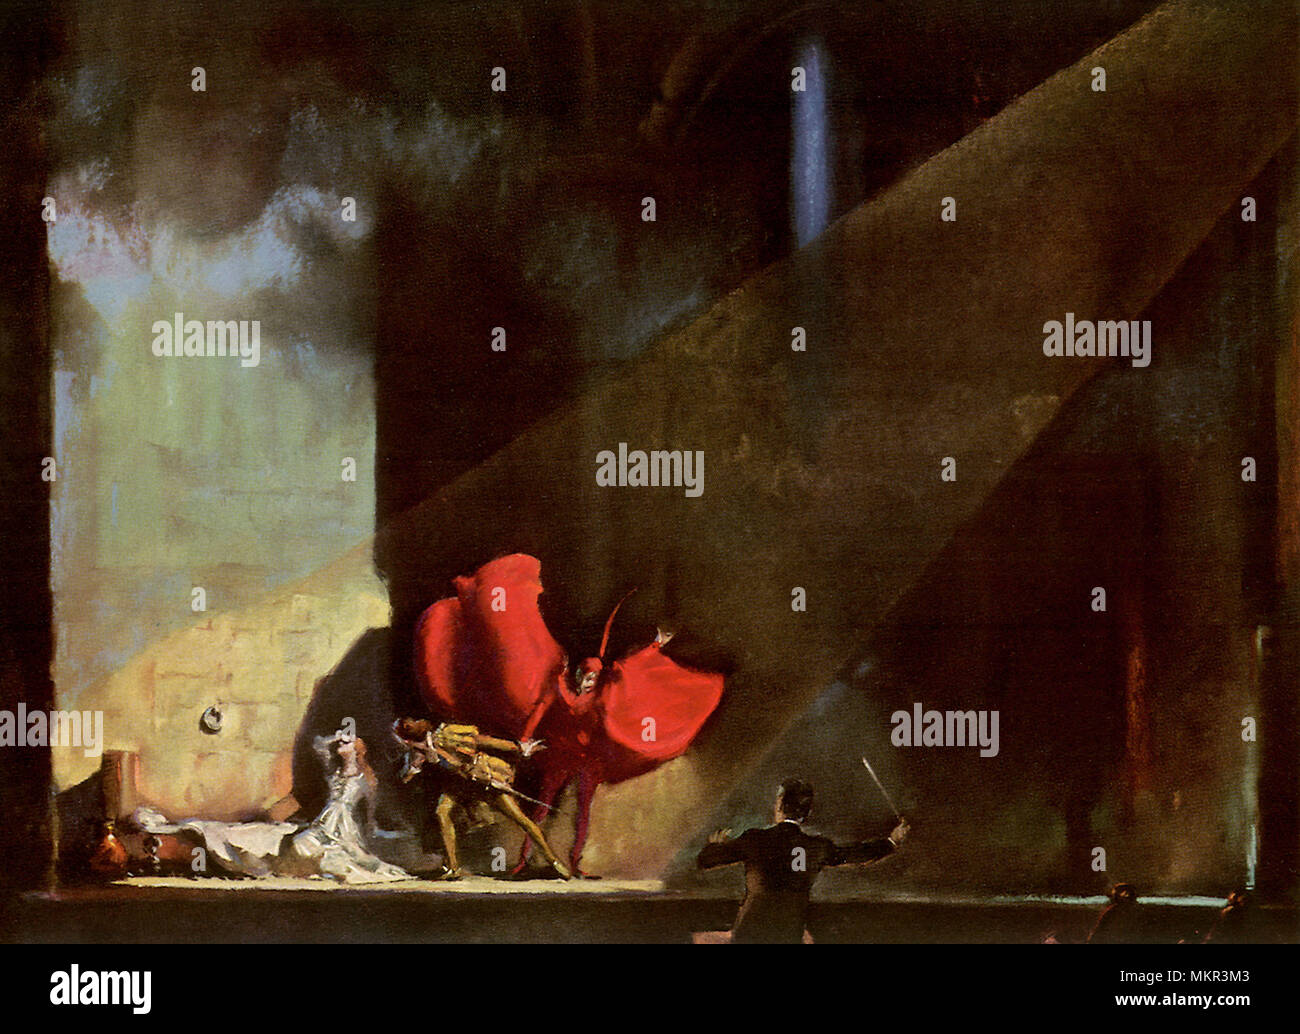 Opera's Dramatic Moment - Stock Image